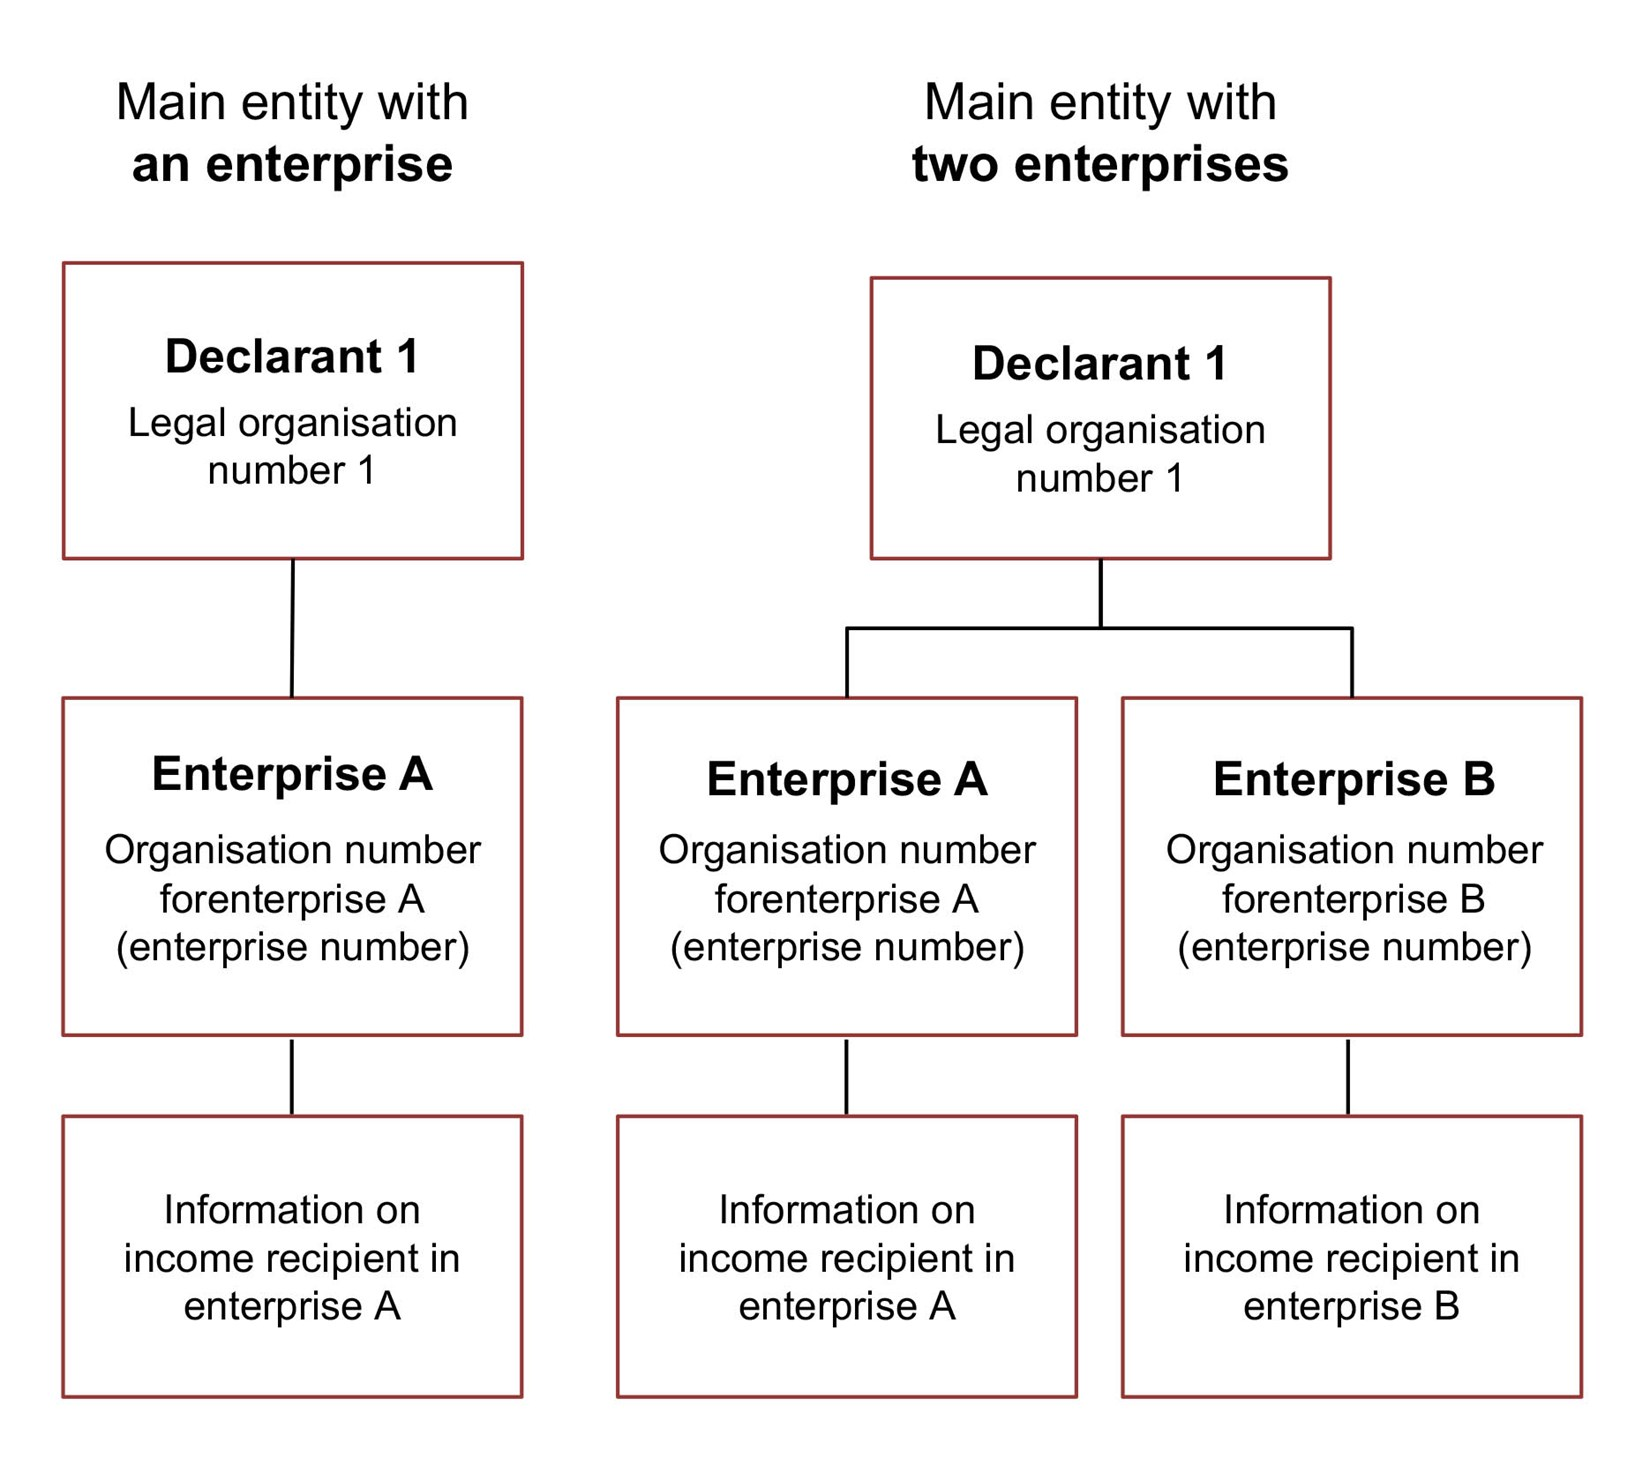 Diagram. Specify the legal organisation number for the main entity. Specify the organisation number for enterprise for each of the enterprises. The text in the article explains this in more detail.